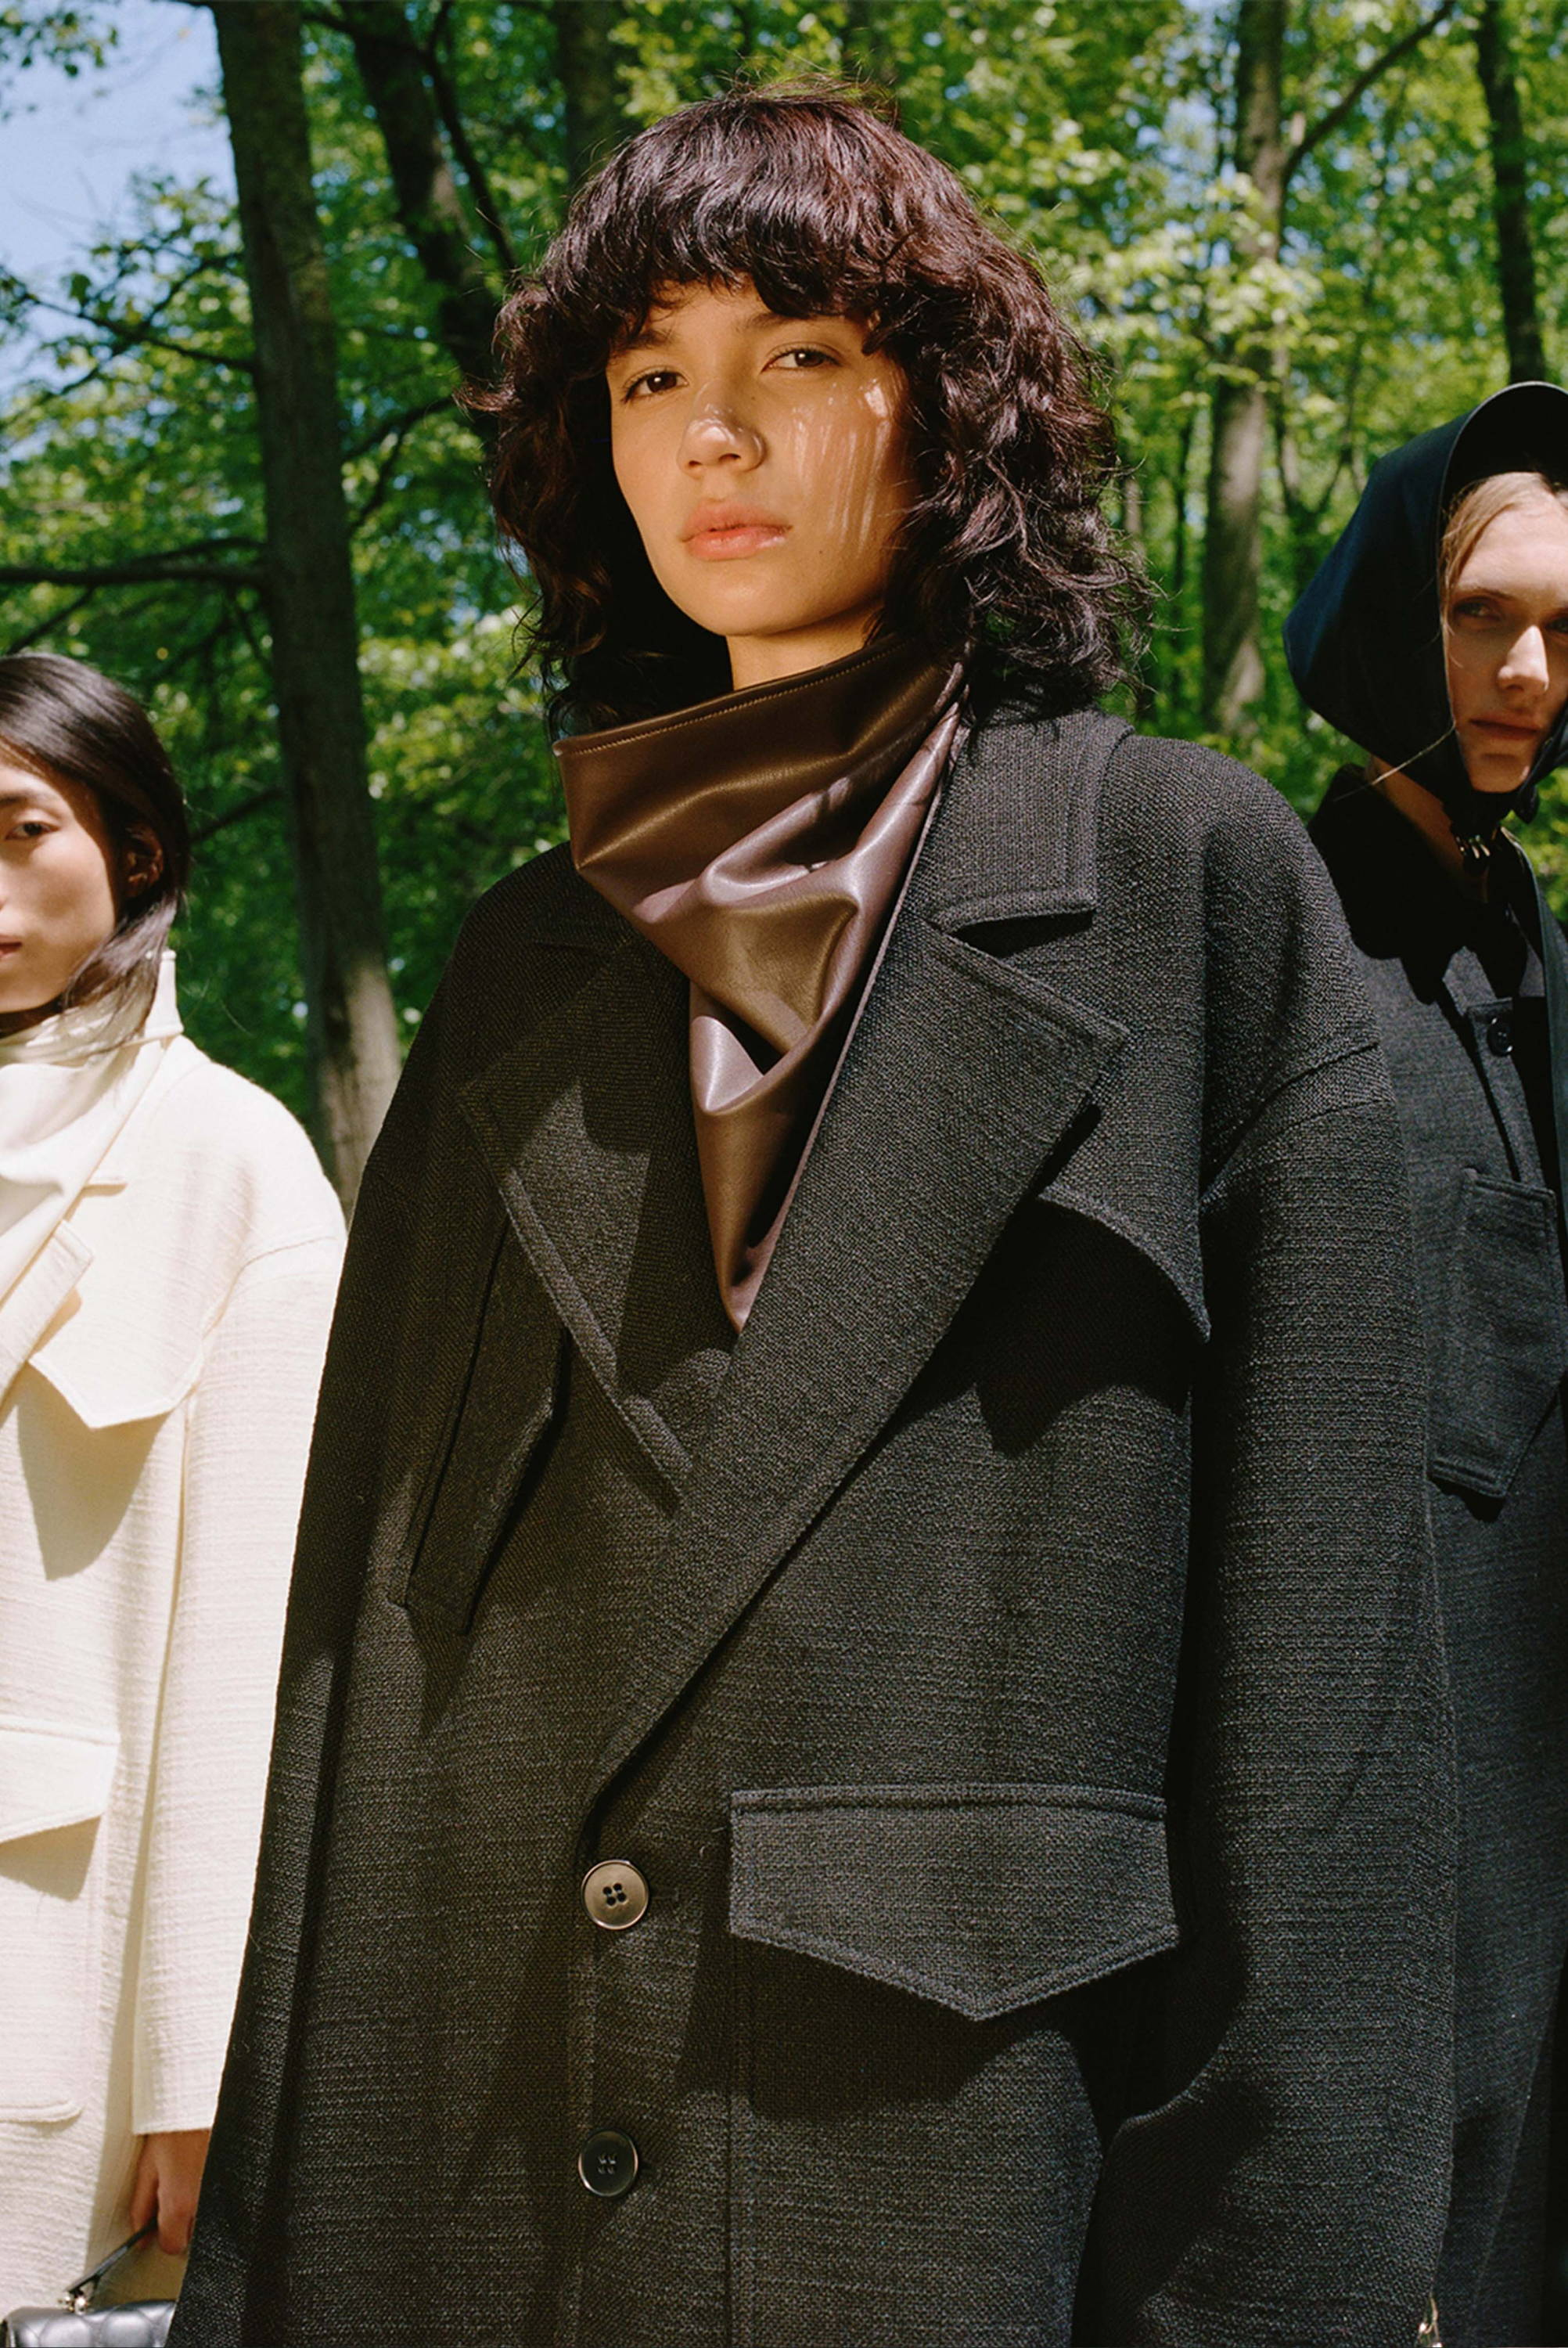 Model wearing oversized black coat with brown leather bandana.